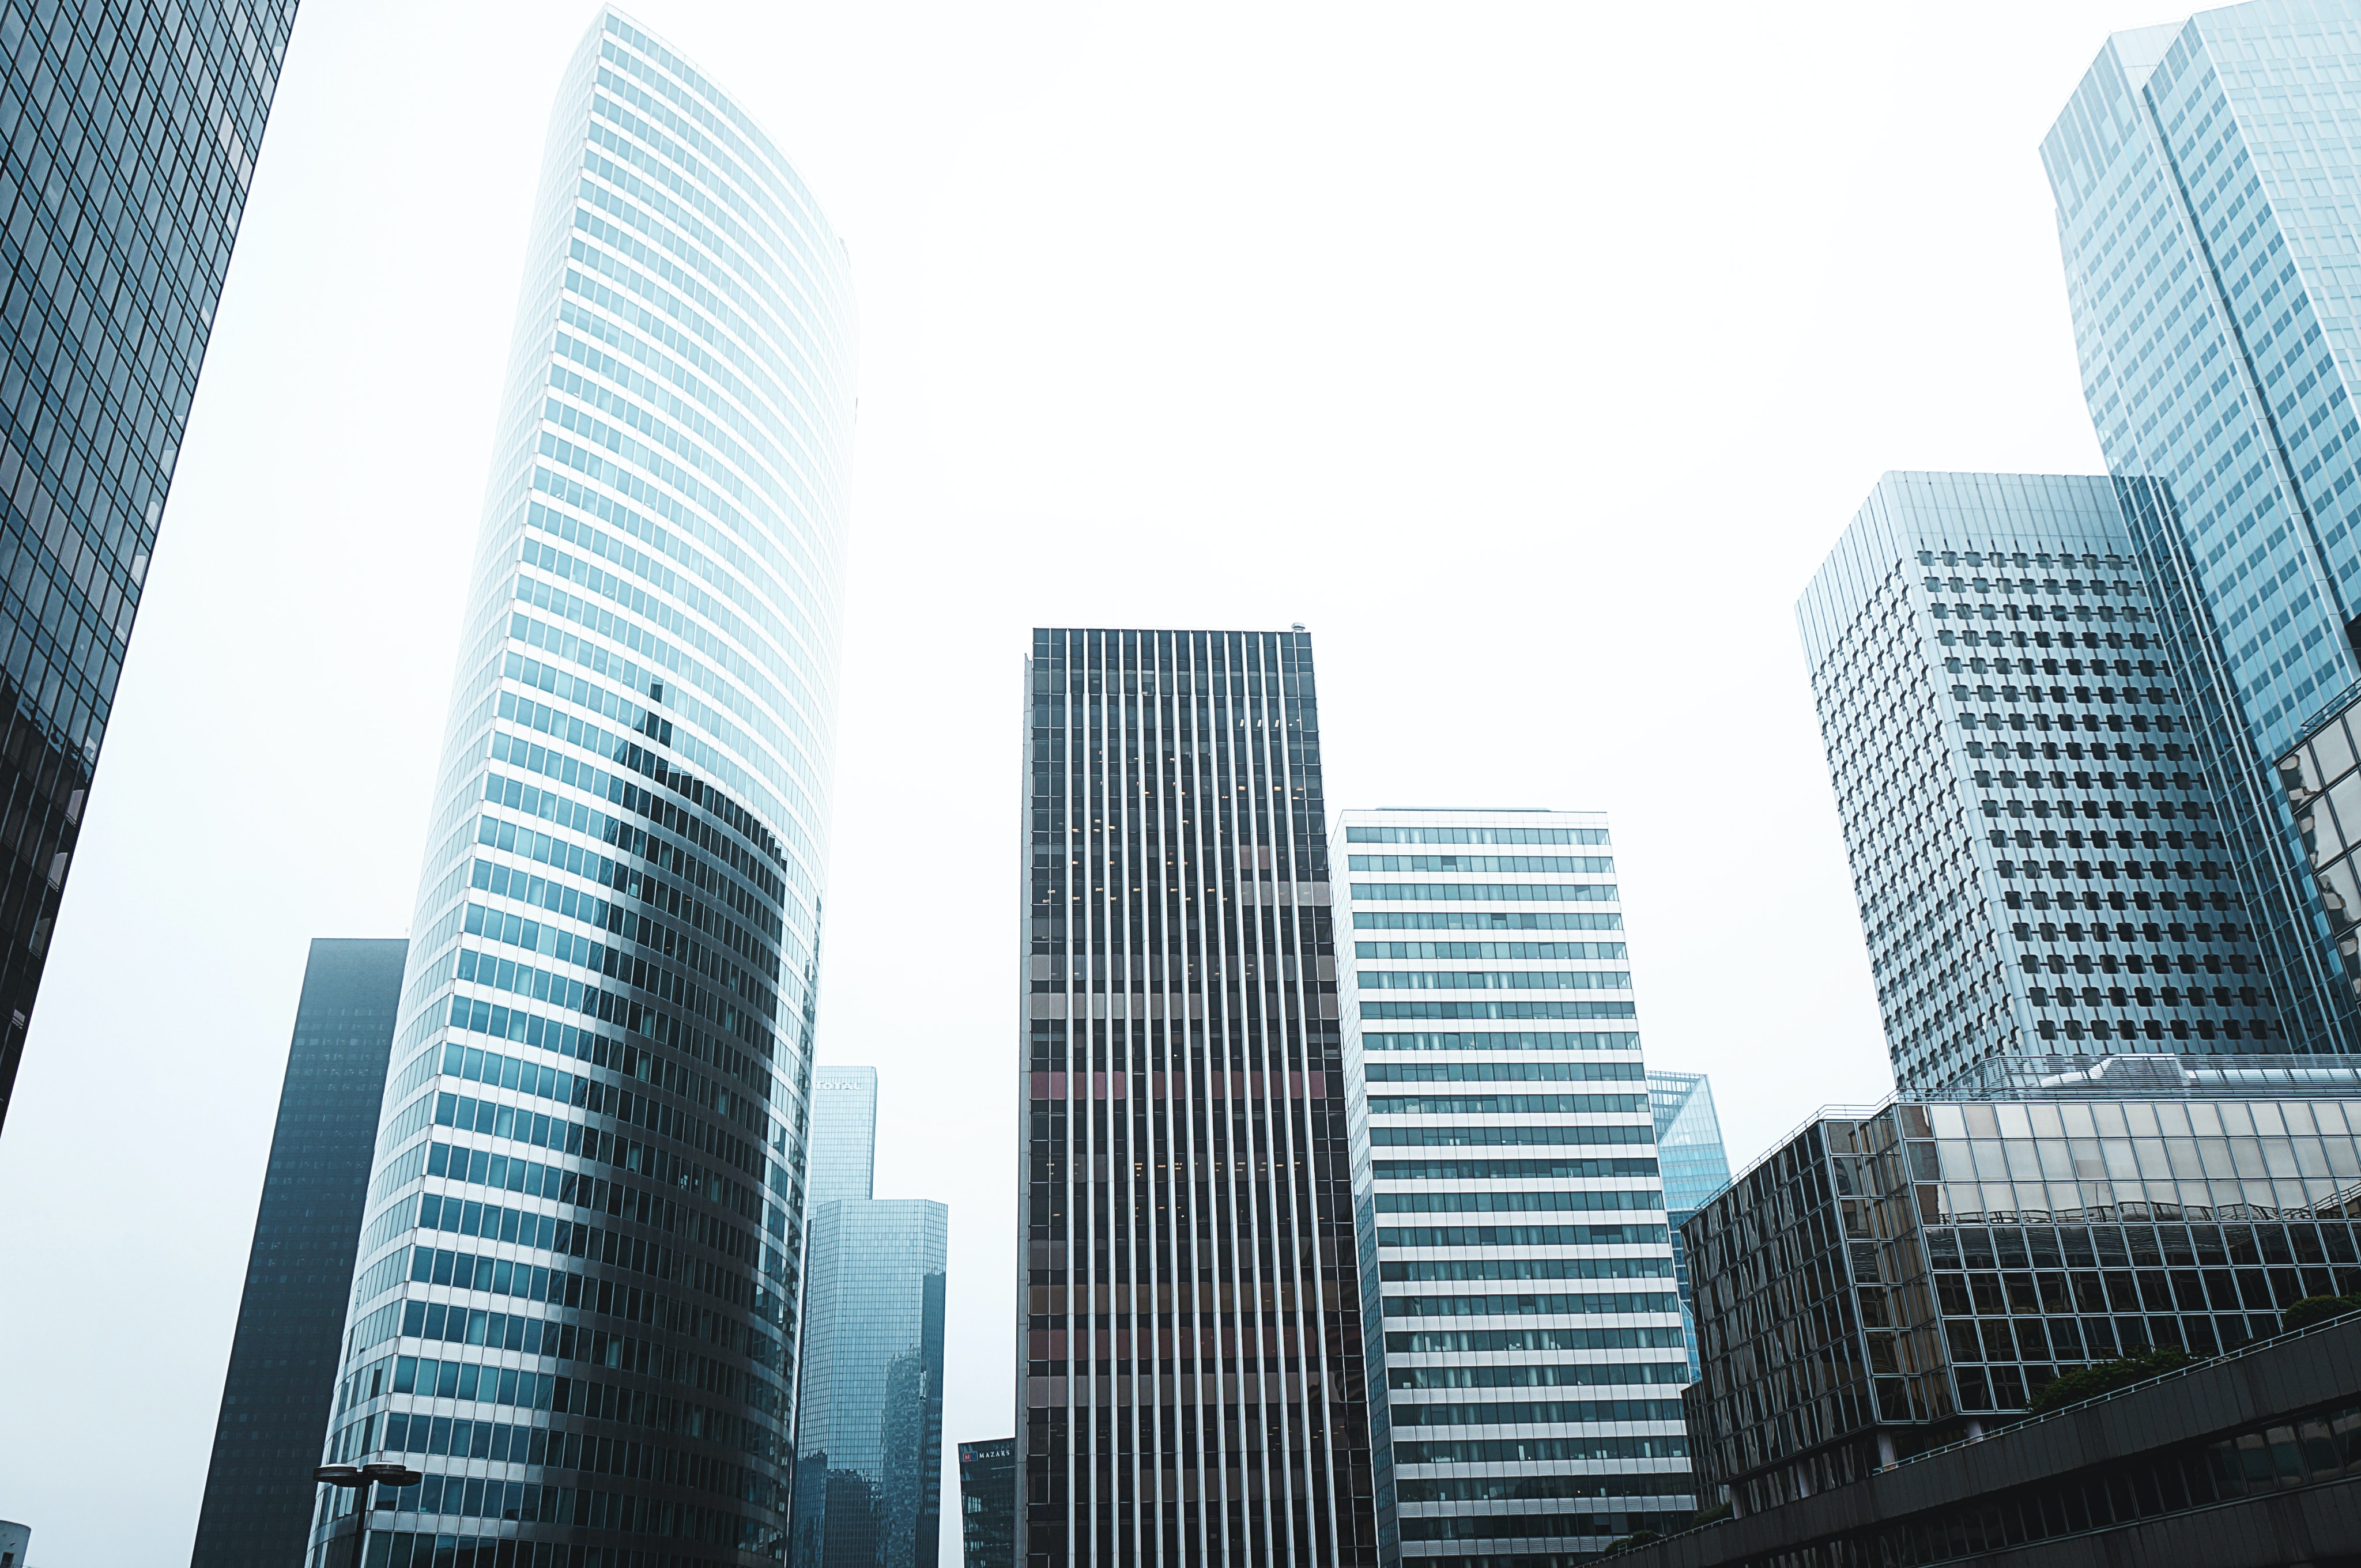 Cover Image for 9 Effective Methods to Prospect for Commercial Real Estate Leads